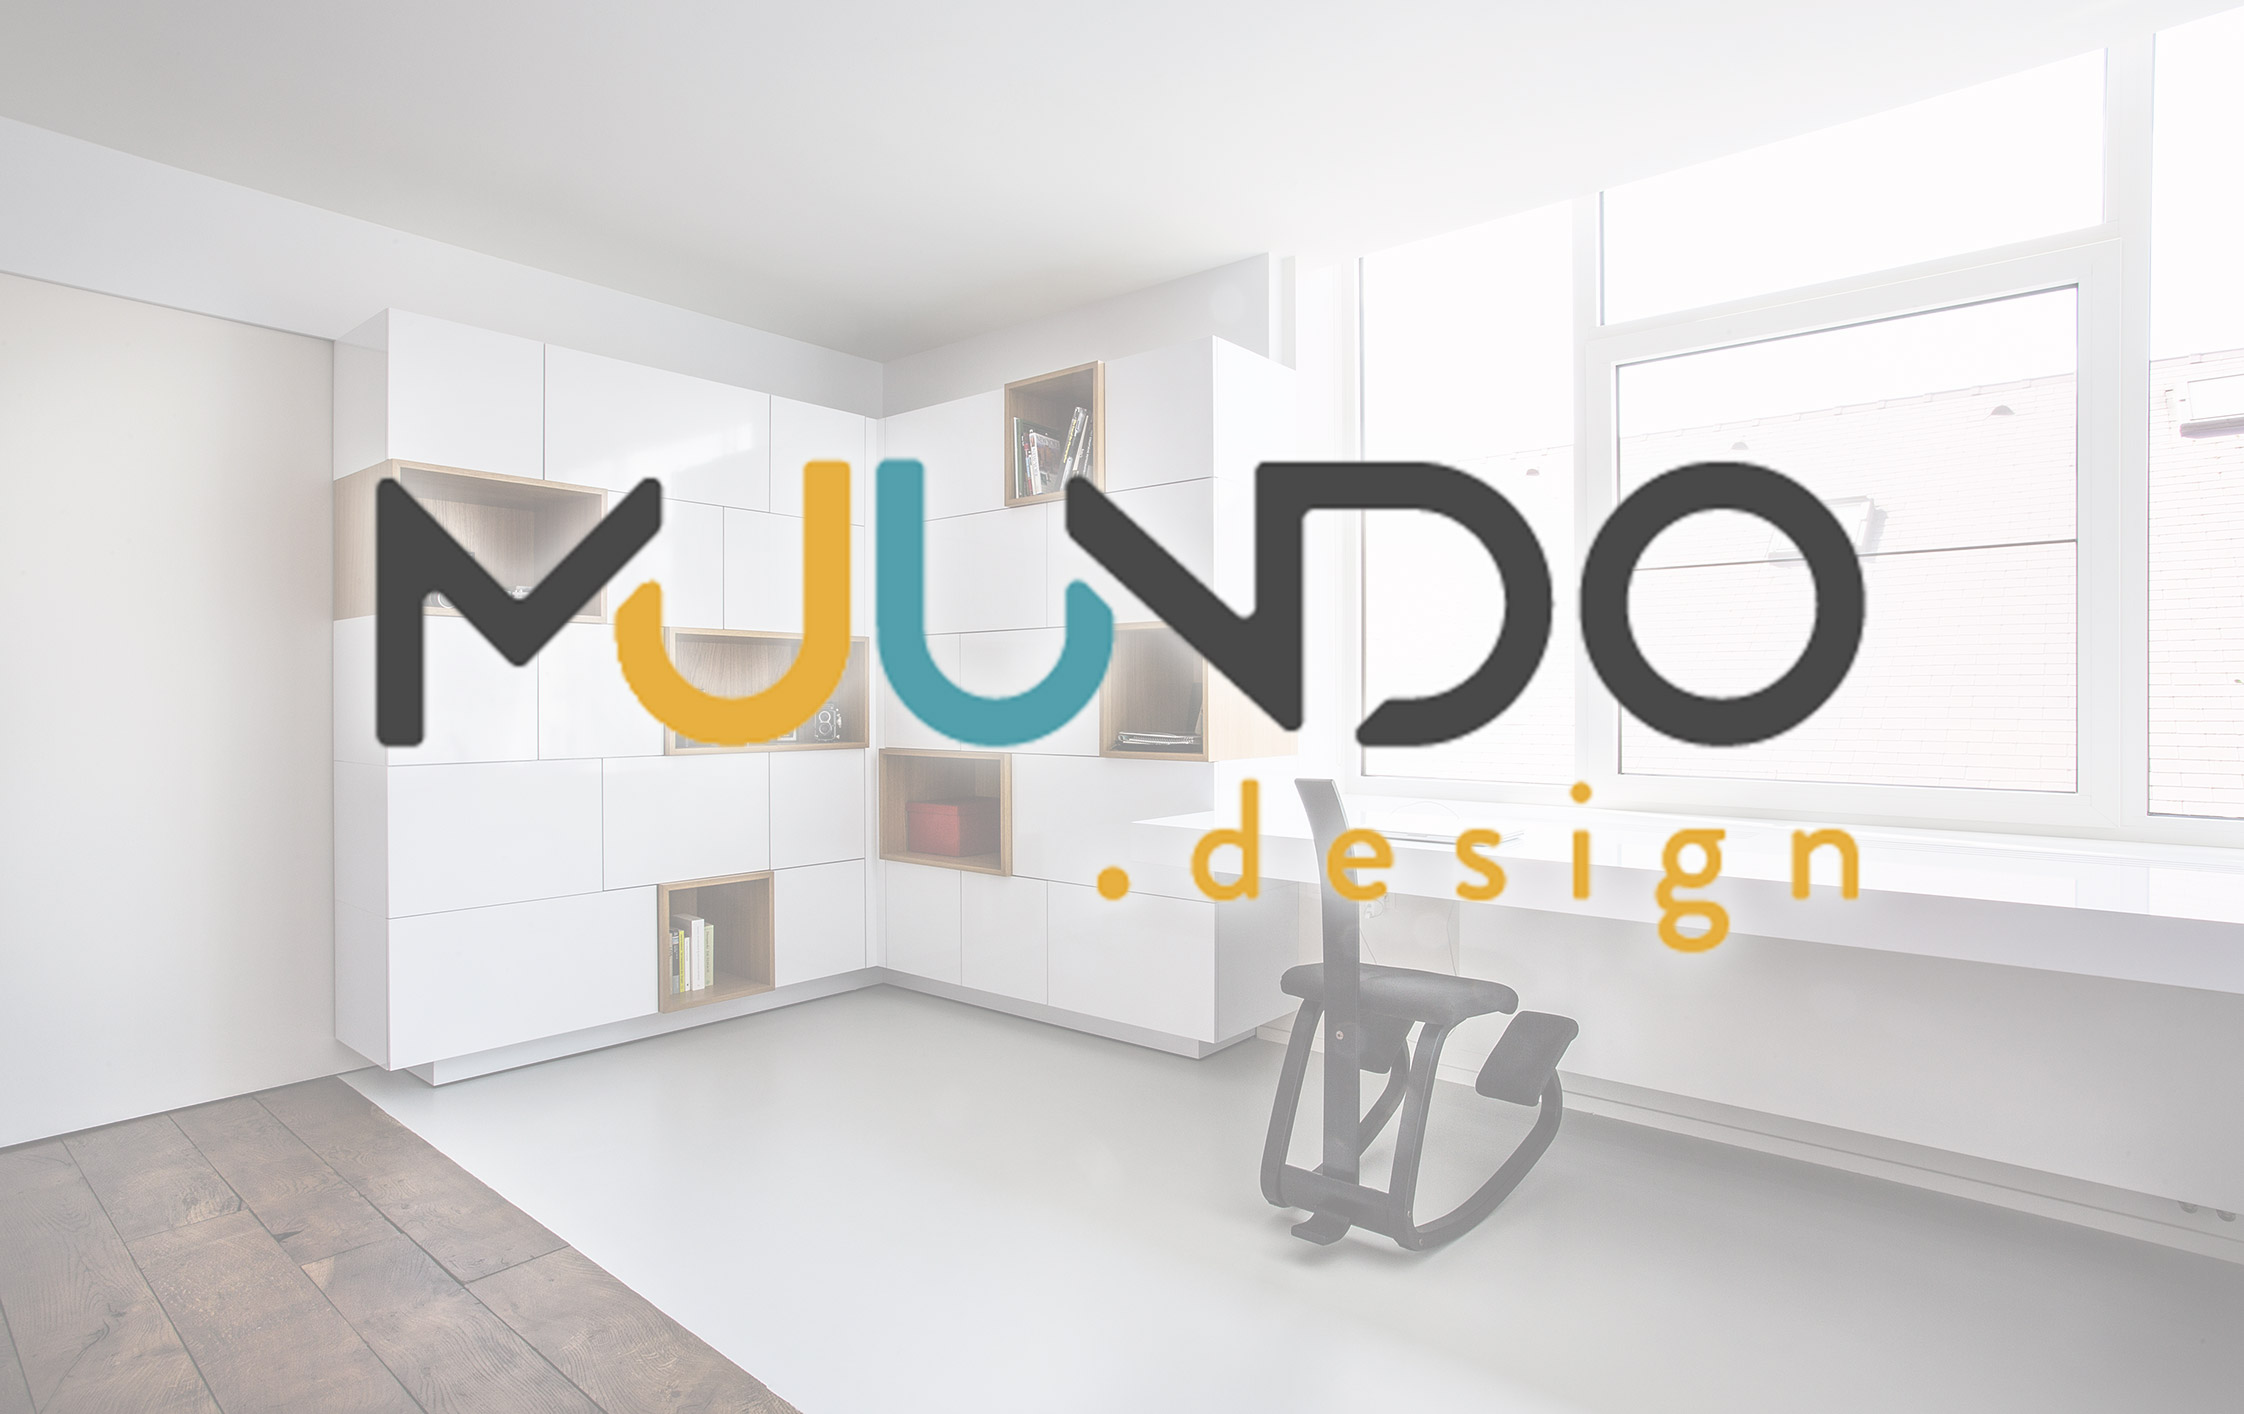 Wat Is Een Binnenhuisarchitect Muundo Design De Online Interieurarchitect